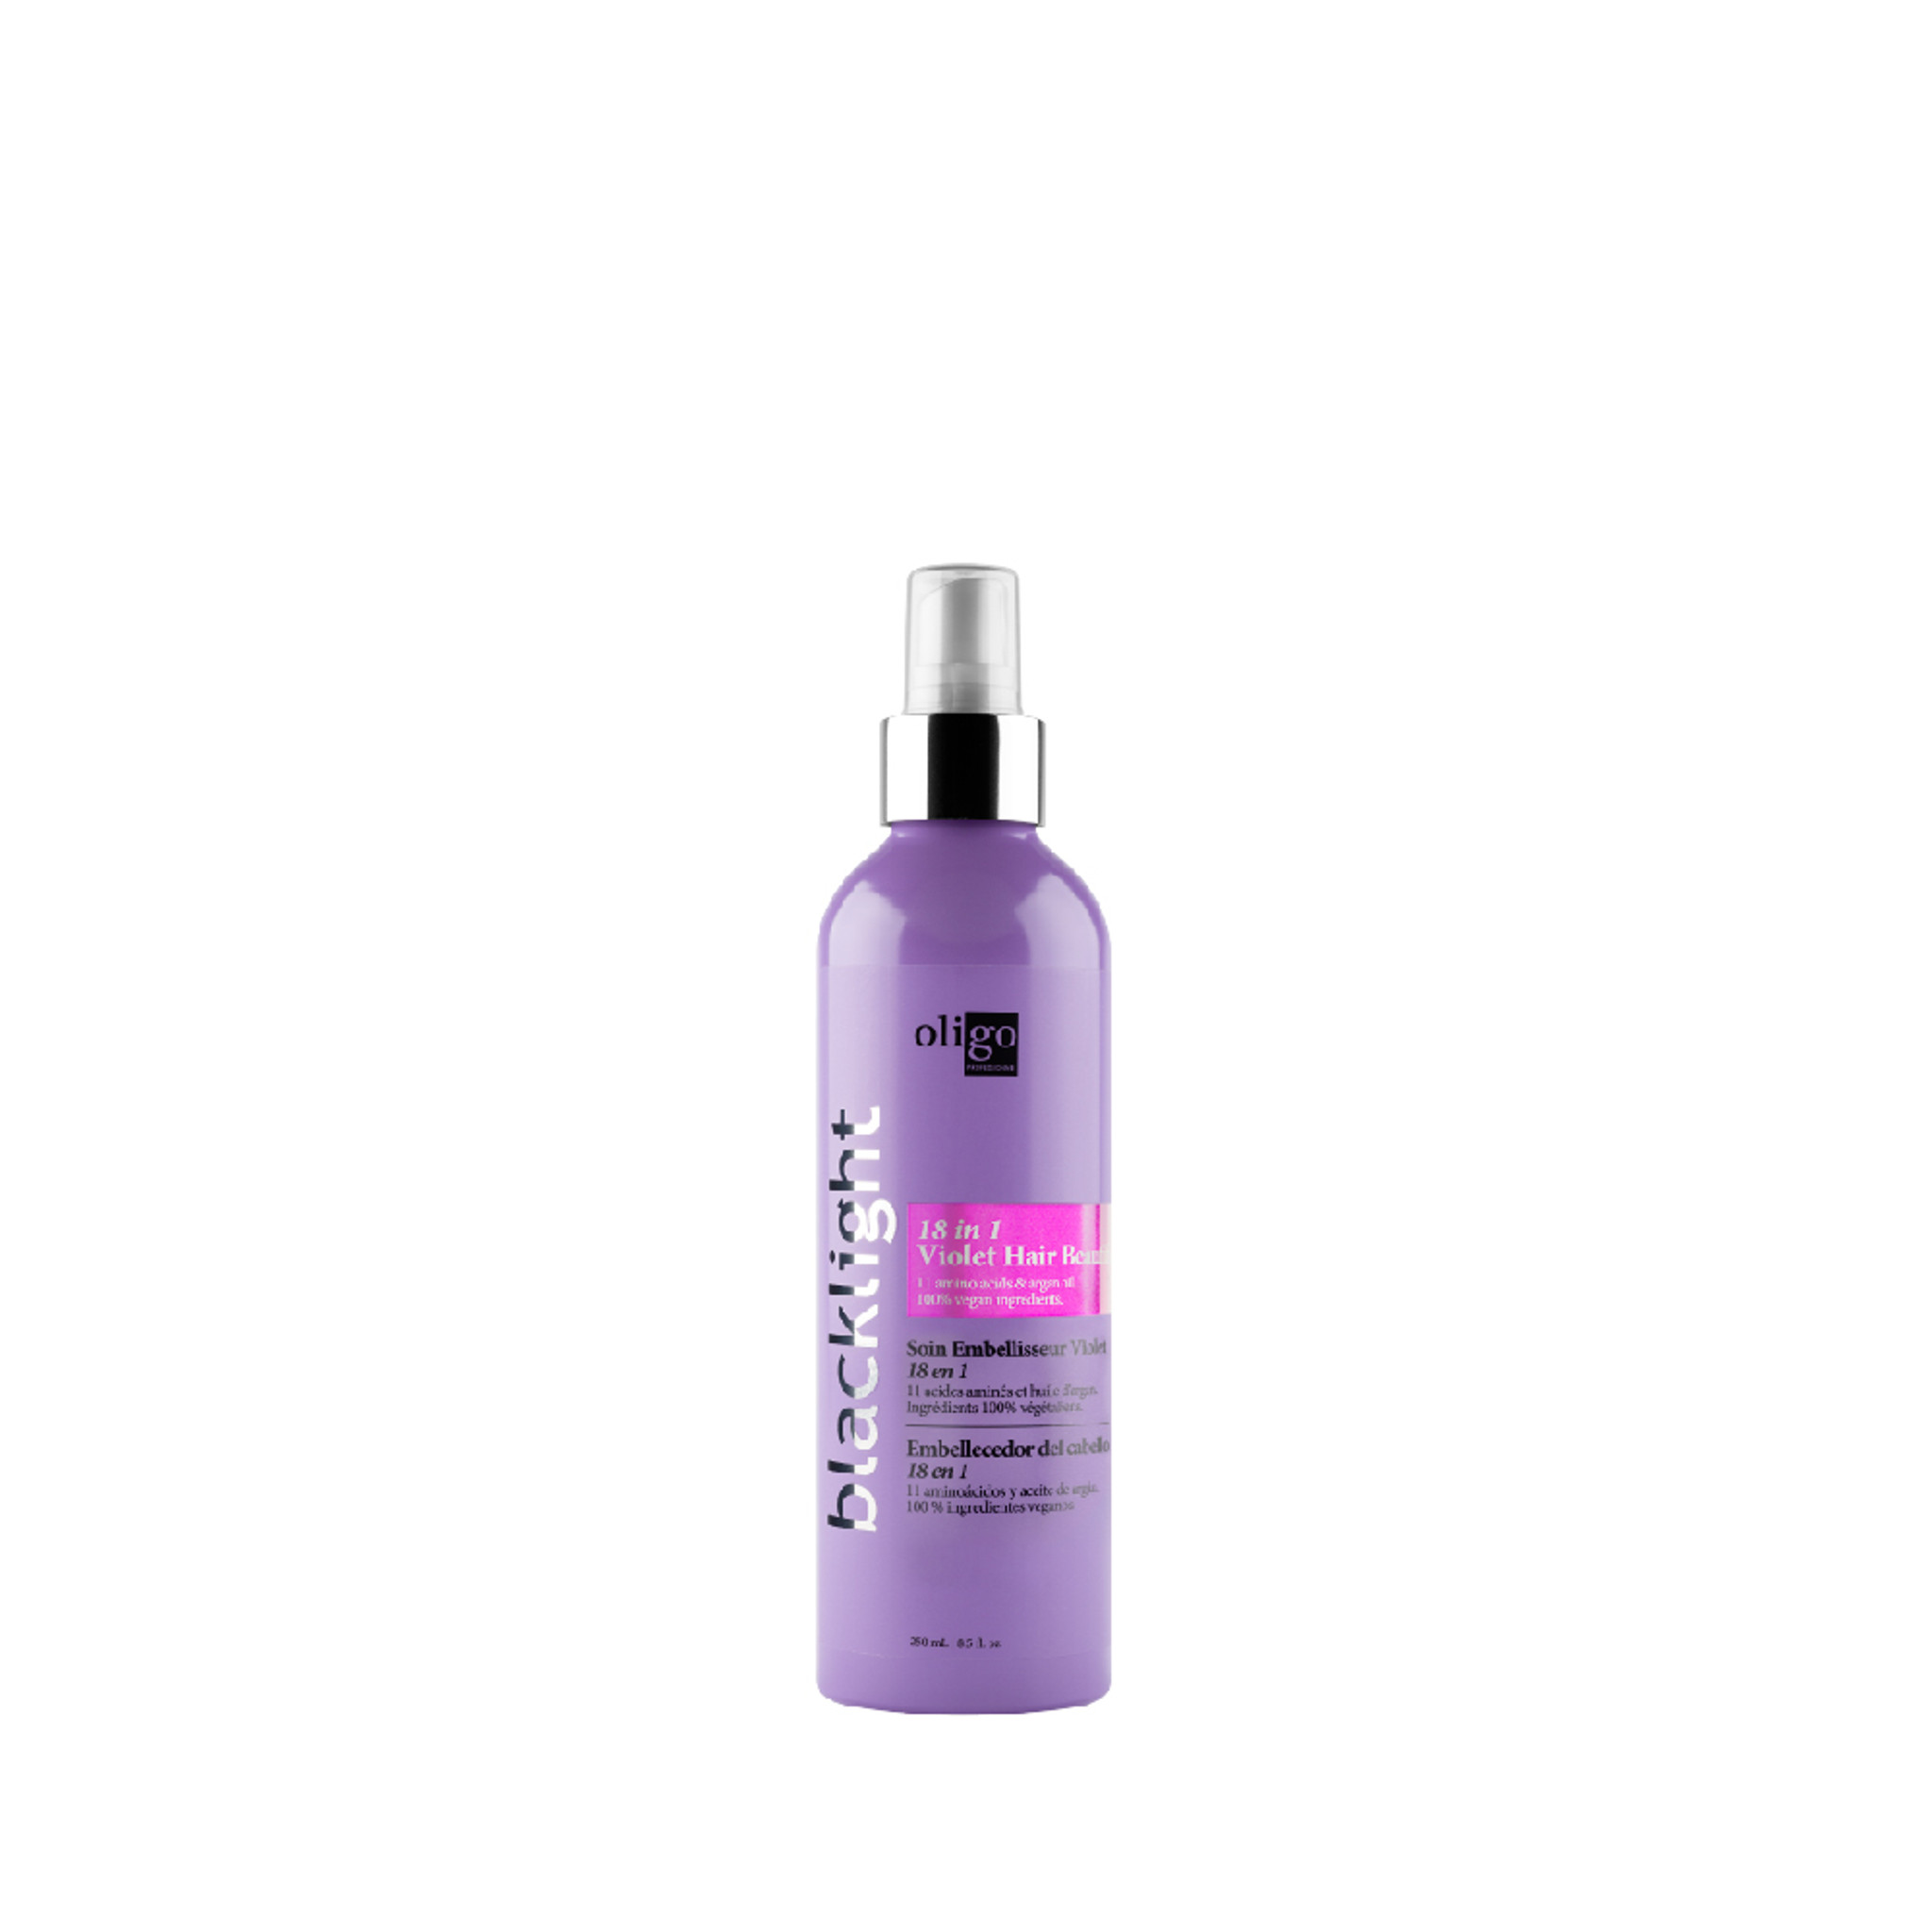 Oligo Pro Blacklight 18 in 1 Hair Beautifier Violet formula 250ml available at Salon Support. Blonde hair treatments, blonde shampoo and conditioners. Salon Support are Hair & Barber Barbershop Trade Wholesale Hairdressing Supplies Melbourne Australia Experience the unmatched lifting power accompanied by a 100% vegan aftercare line. Oligo Pro Blacklight lightening system is the key to navigating your way through the complete spectrum of blondes.